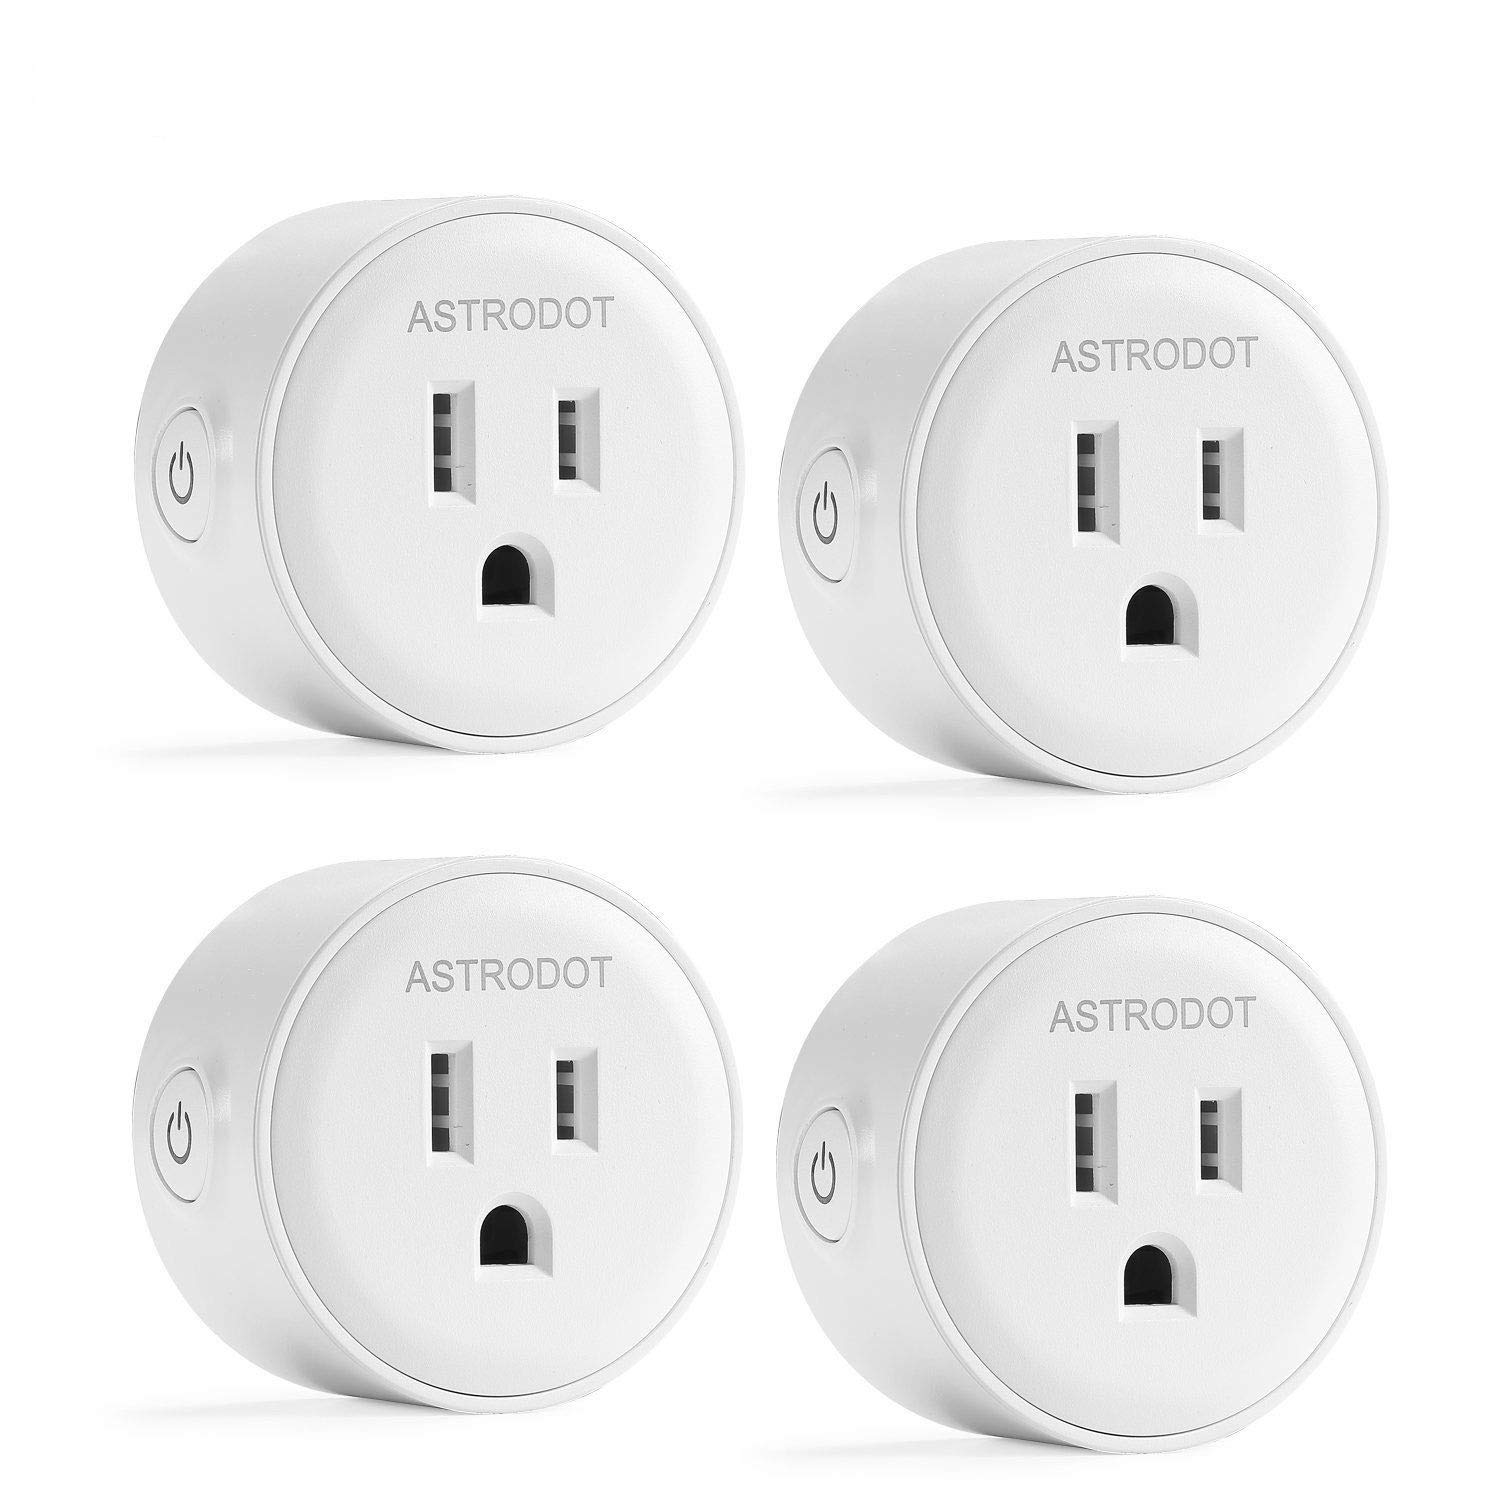 Greendot Wifi Smart Plug Mini, Smart Home Power Control Socket, Remote Control Your Household Equipment from Everywhere, No Hub Required, Compatible with Alexa and other assitants (4 Packs) (4)